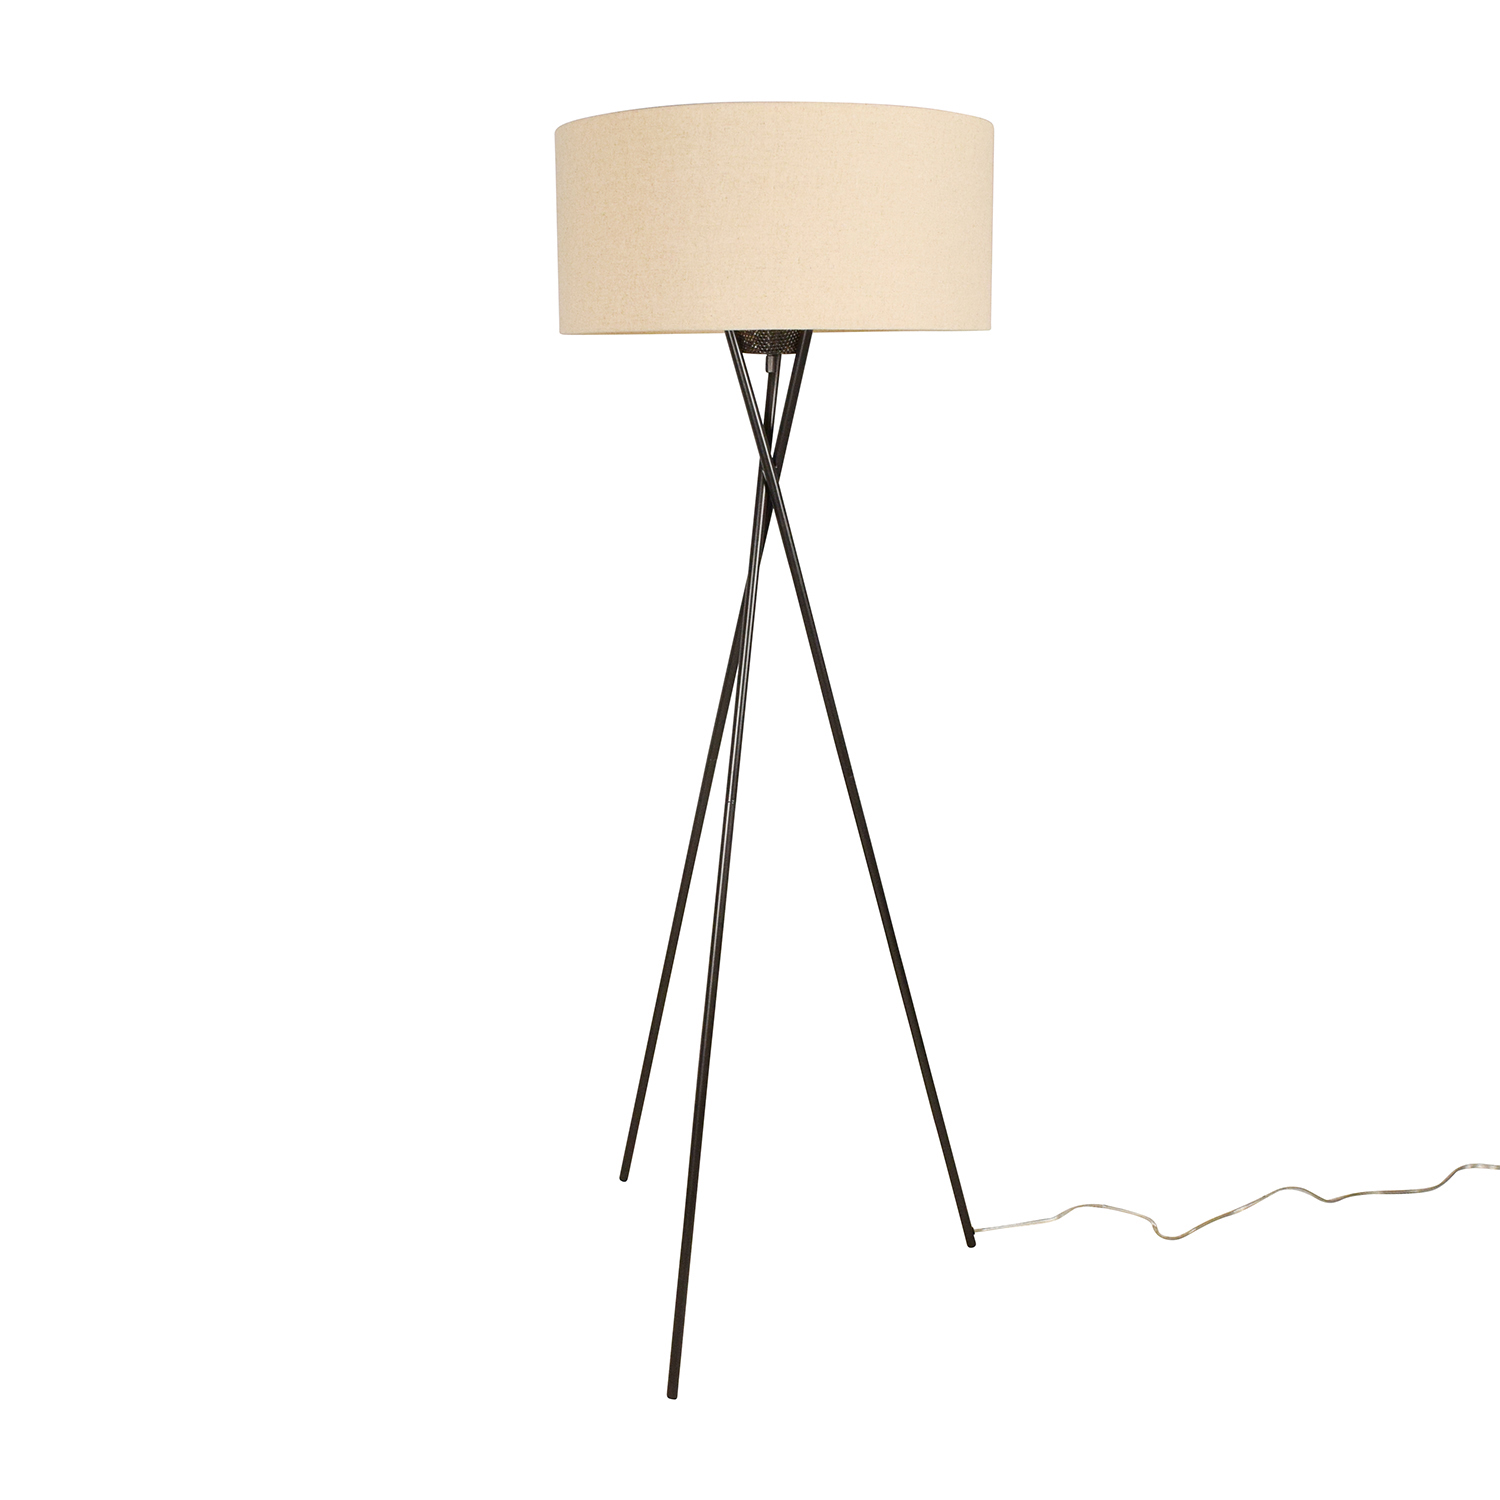 Pottery Barn Standing Lamps: Pottery Barn Pottery Barn Tripod Standing Lamp